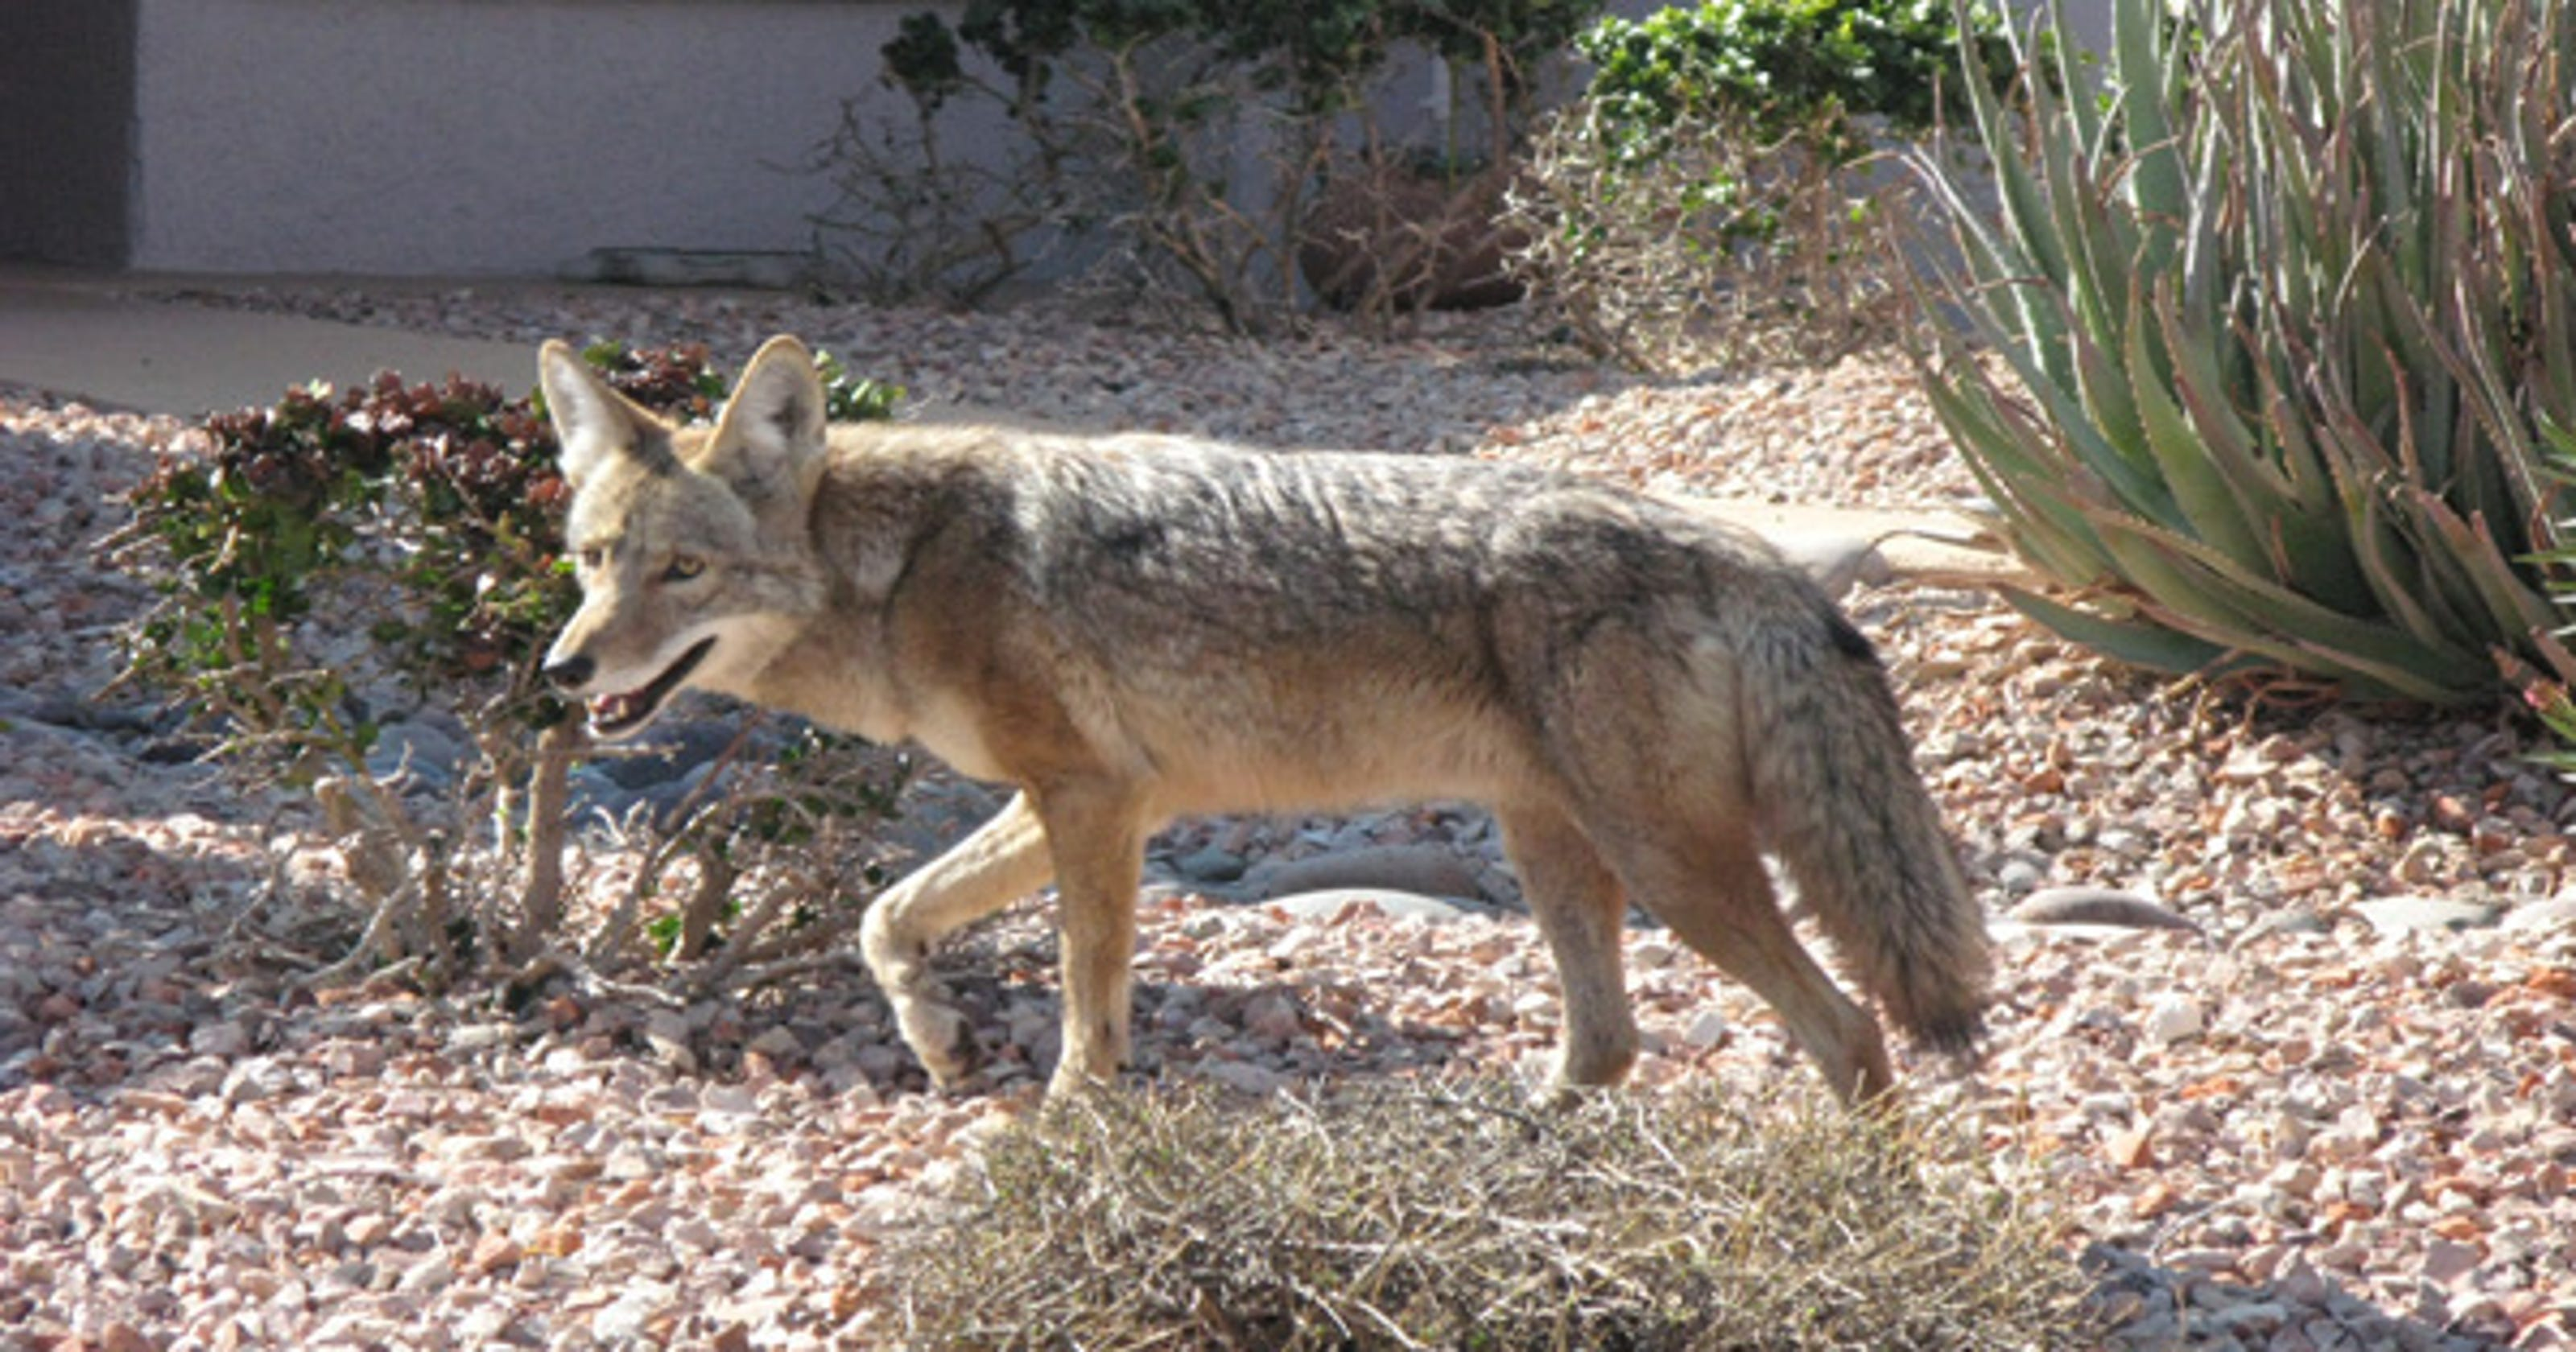 Have You Seen A Coyote In Your Neighborhood Lately Heres Why Baby Cans Rattle Stick